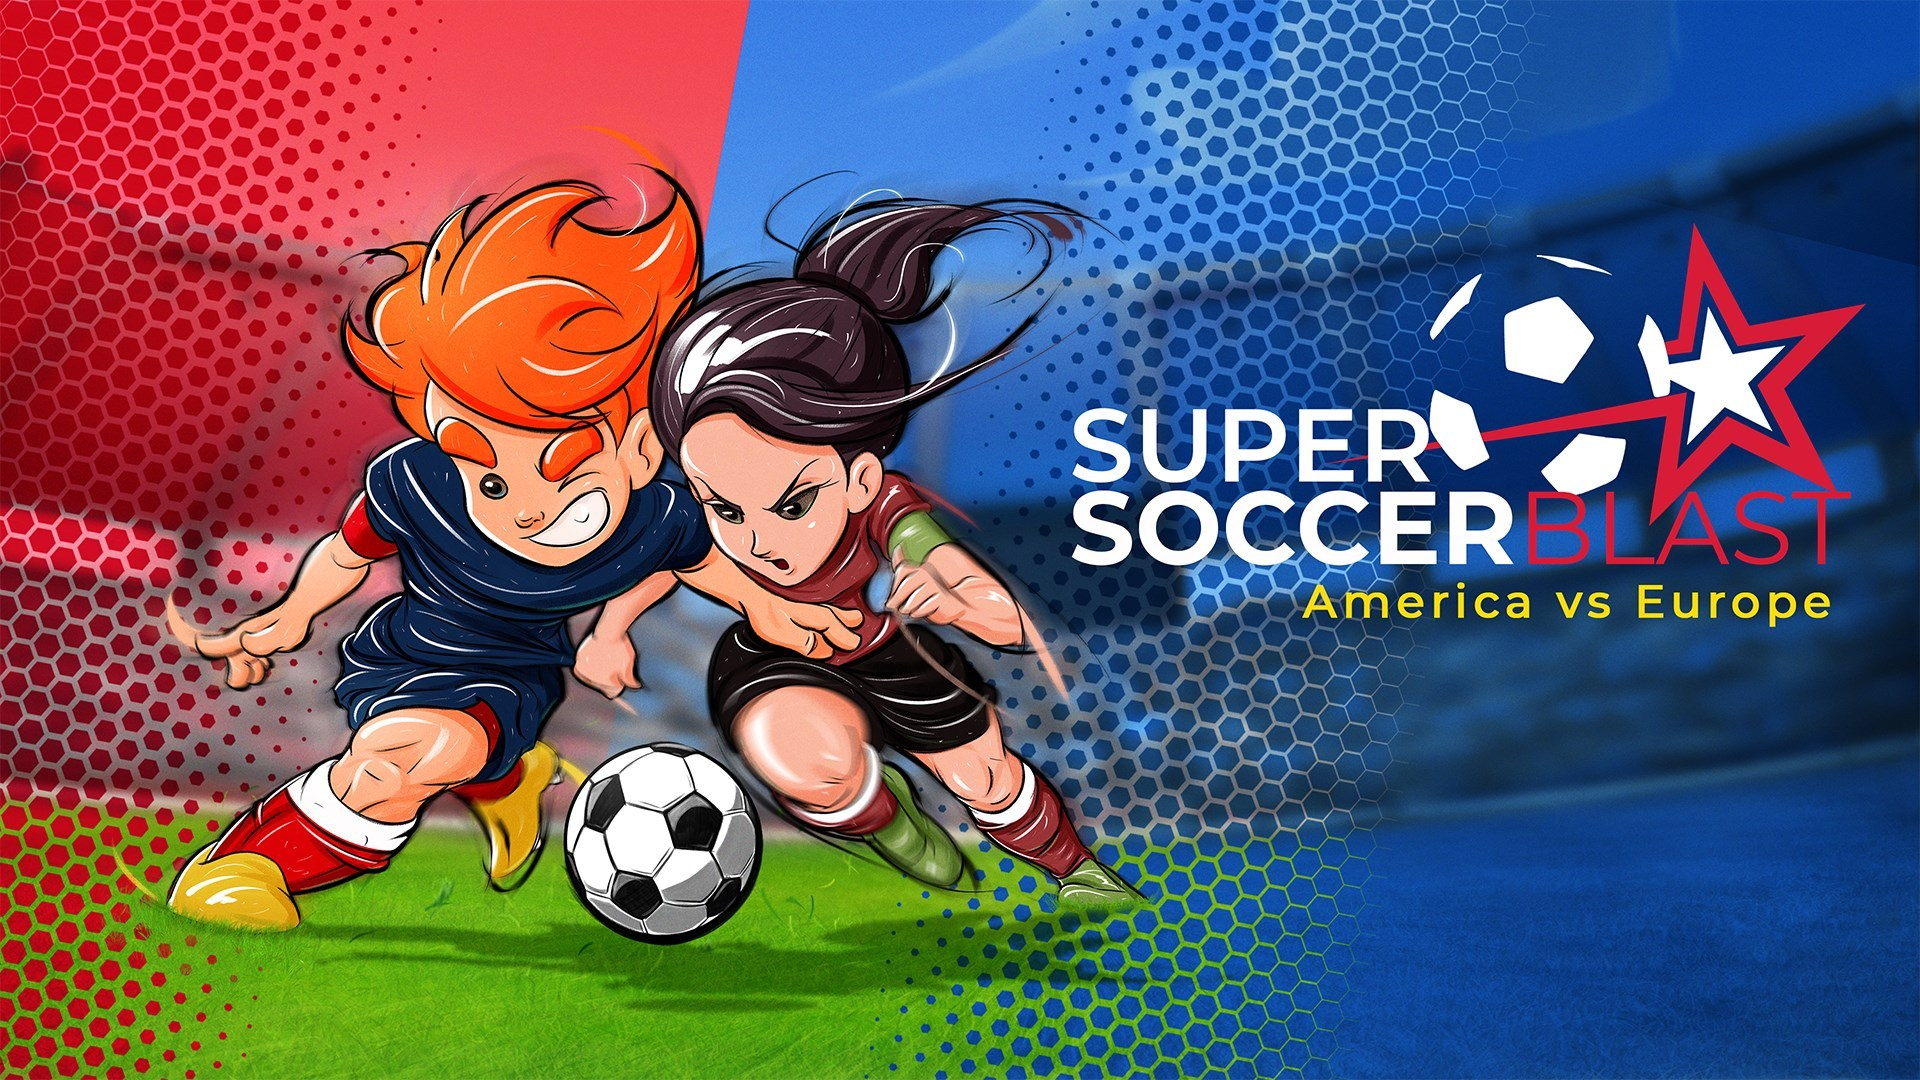 Super Soccer Blast: America vs Europe Is Now Available For Digital Pre-order And Pre-download On Xbox One And Xbox Series X S 1